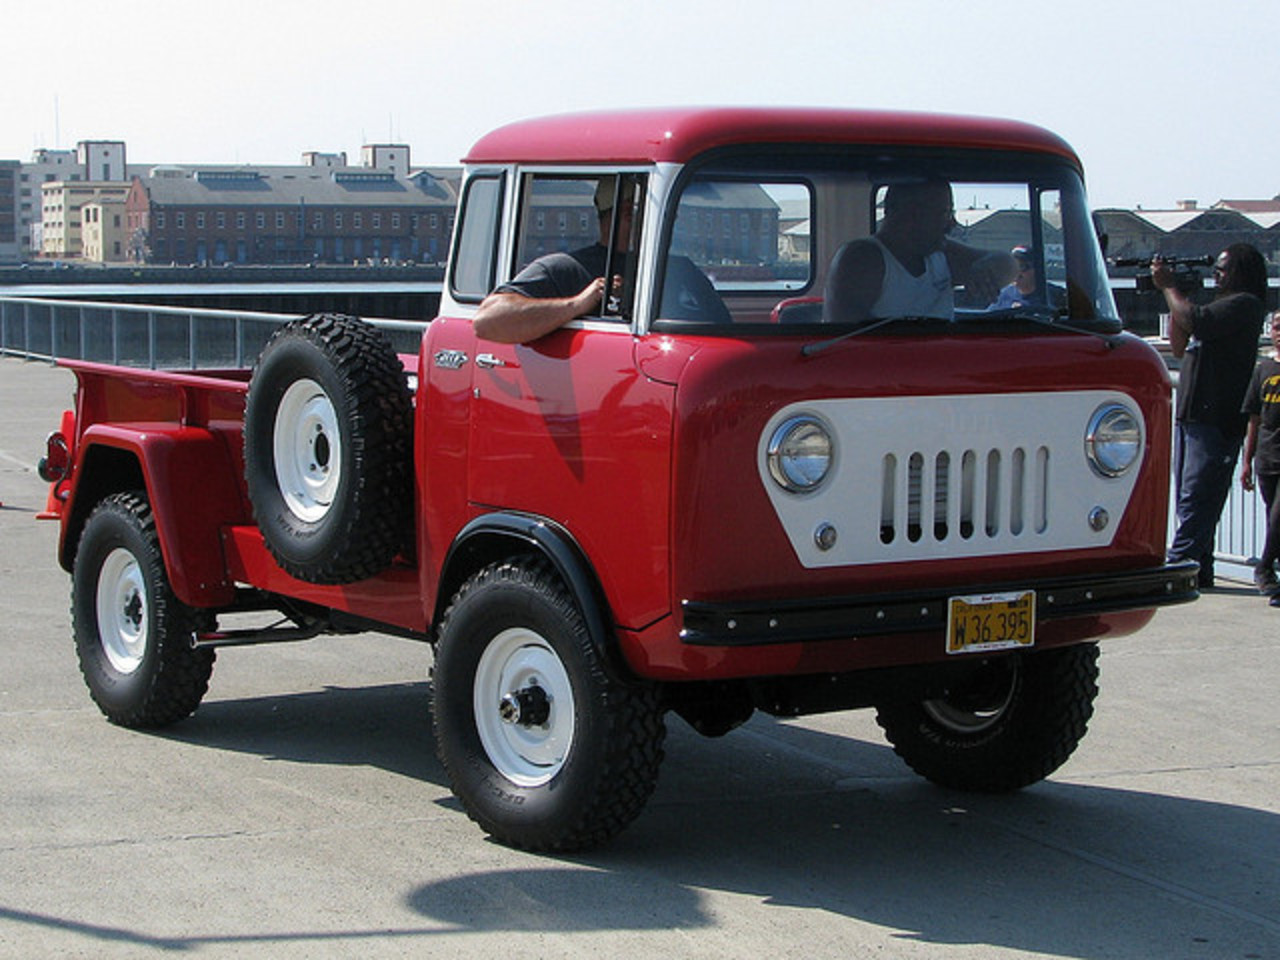 1960 Willys Jeep FC 170 C.O.E. Truck 'W 36 395' 5 | Flickr - Photo ...